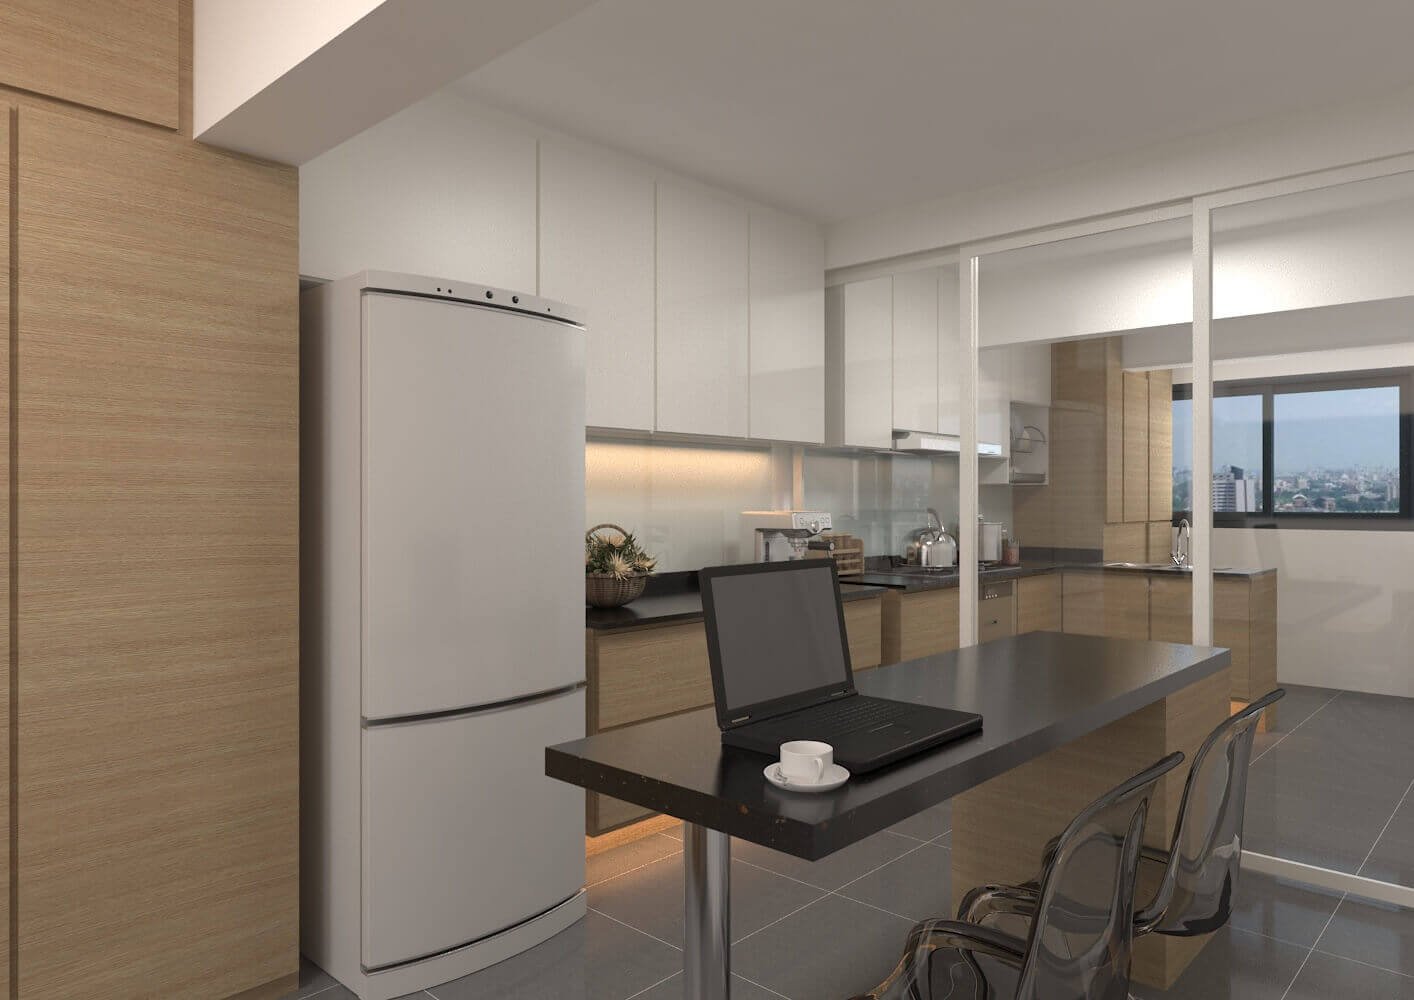 3 room hdb laurus design pte ltd Kitchen design in hdb